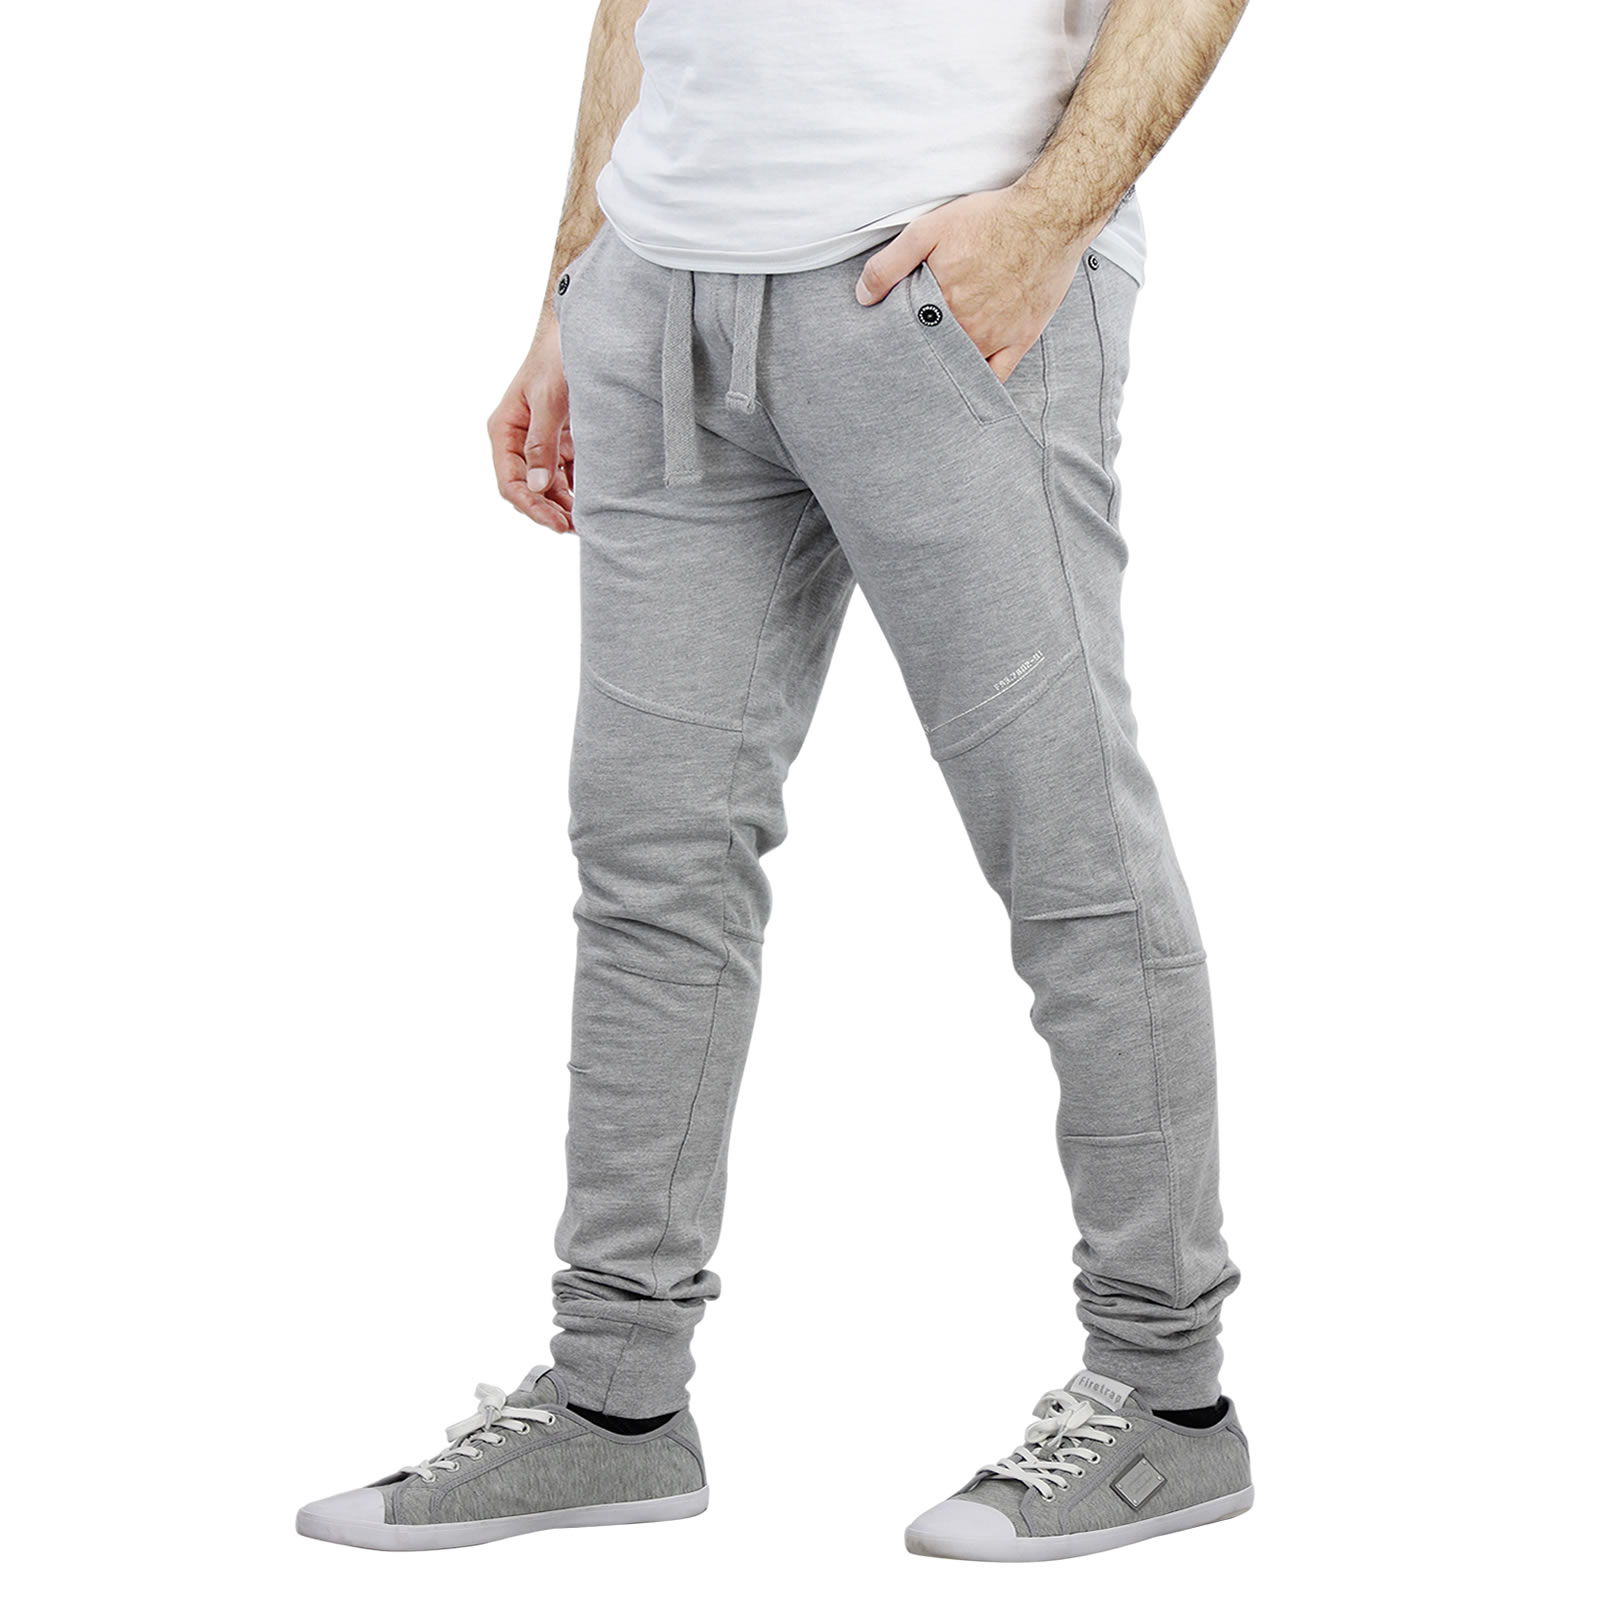 The Lingham joggers blend the casualness of tracksuit bottoms with the stylish fit of your favourite skinny jeans. Whether you're heading out for a run, facing a day of lectures or just popping to the shops these easy-to-wear essentials will keep you looking cool and feeling comfortable.